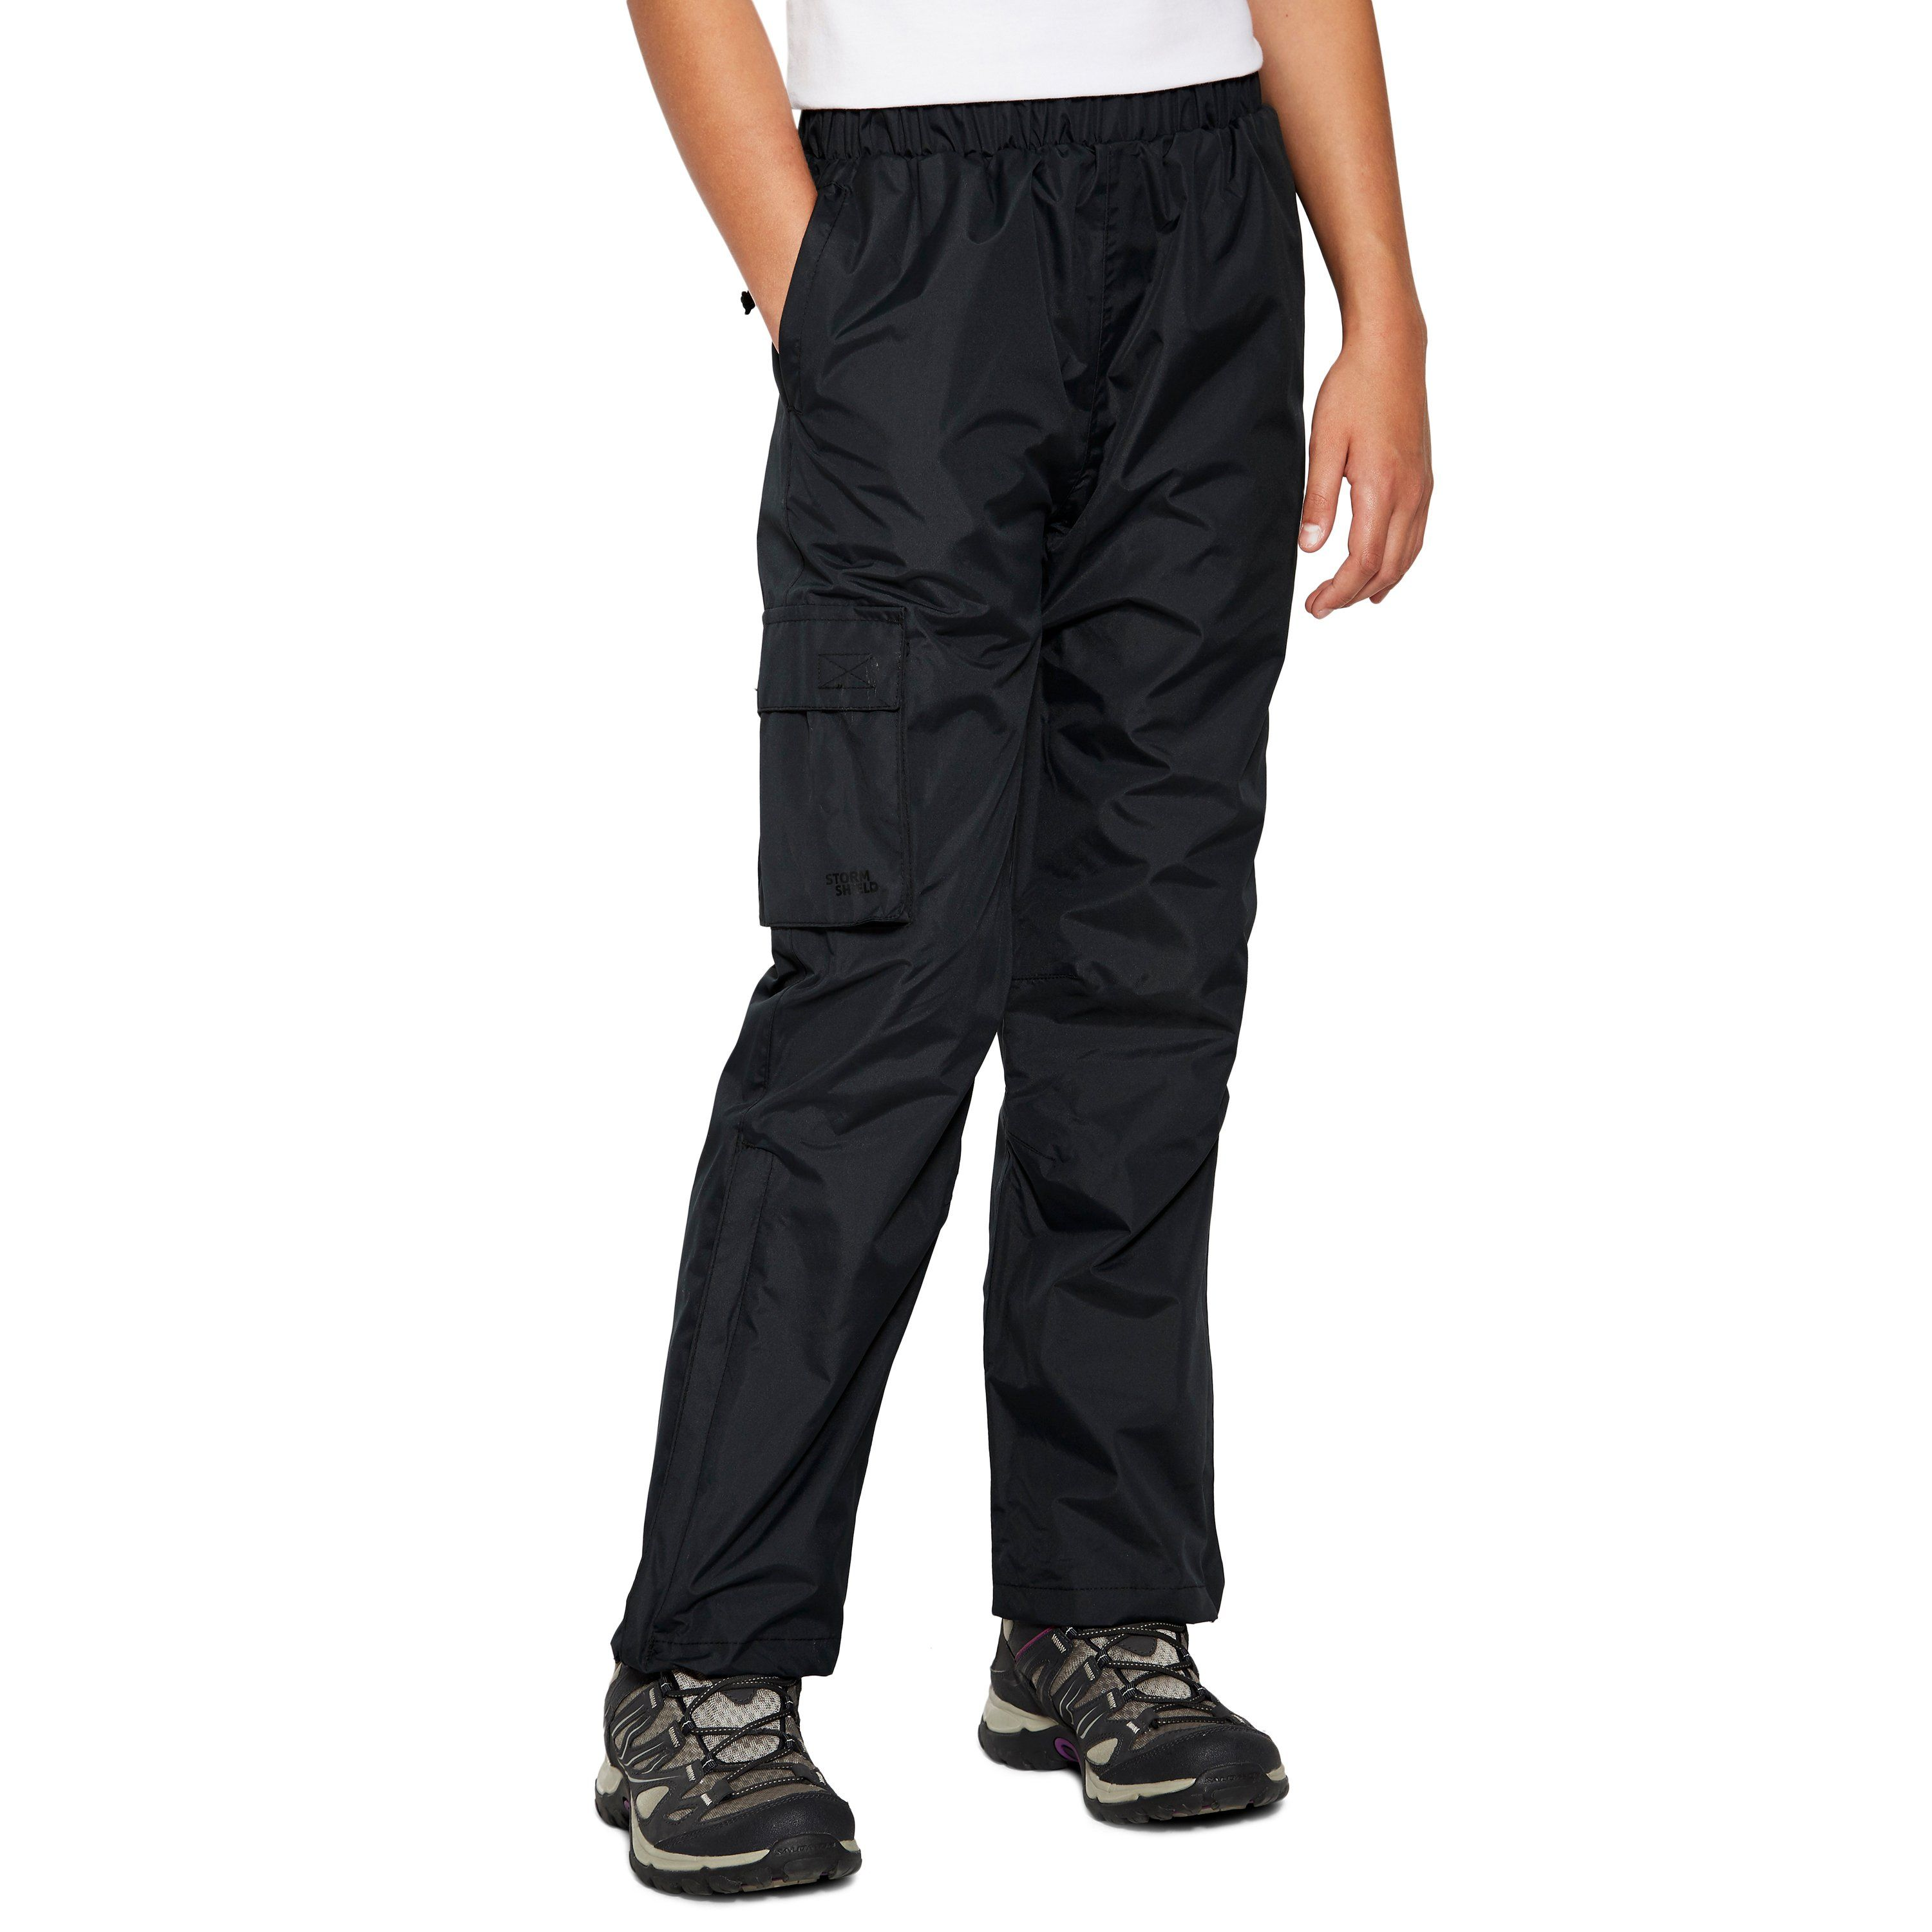 Peter Storm Kids' Storm Waterproof Trousers